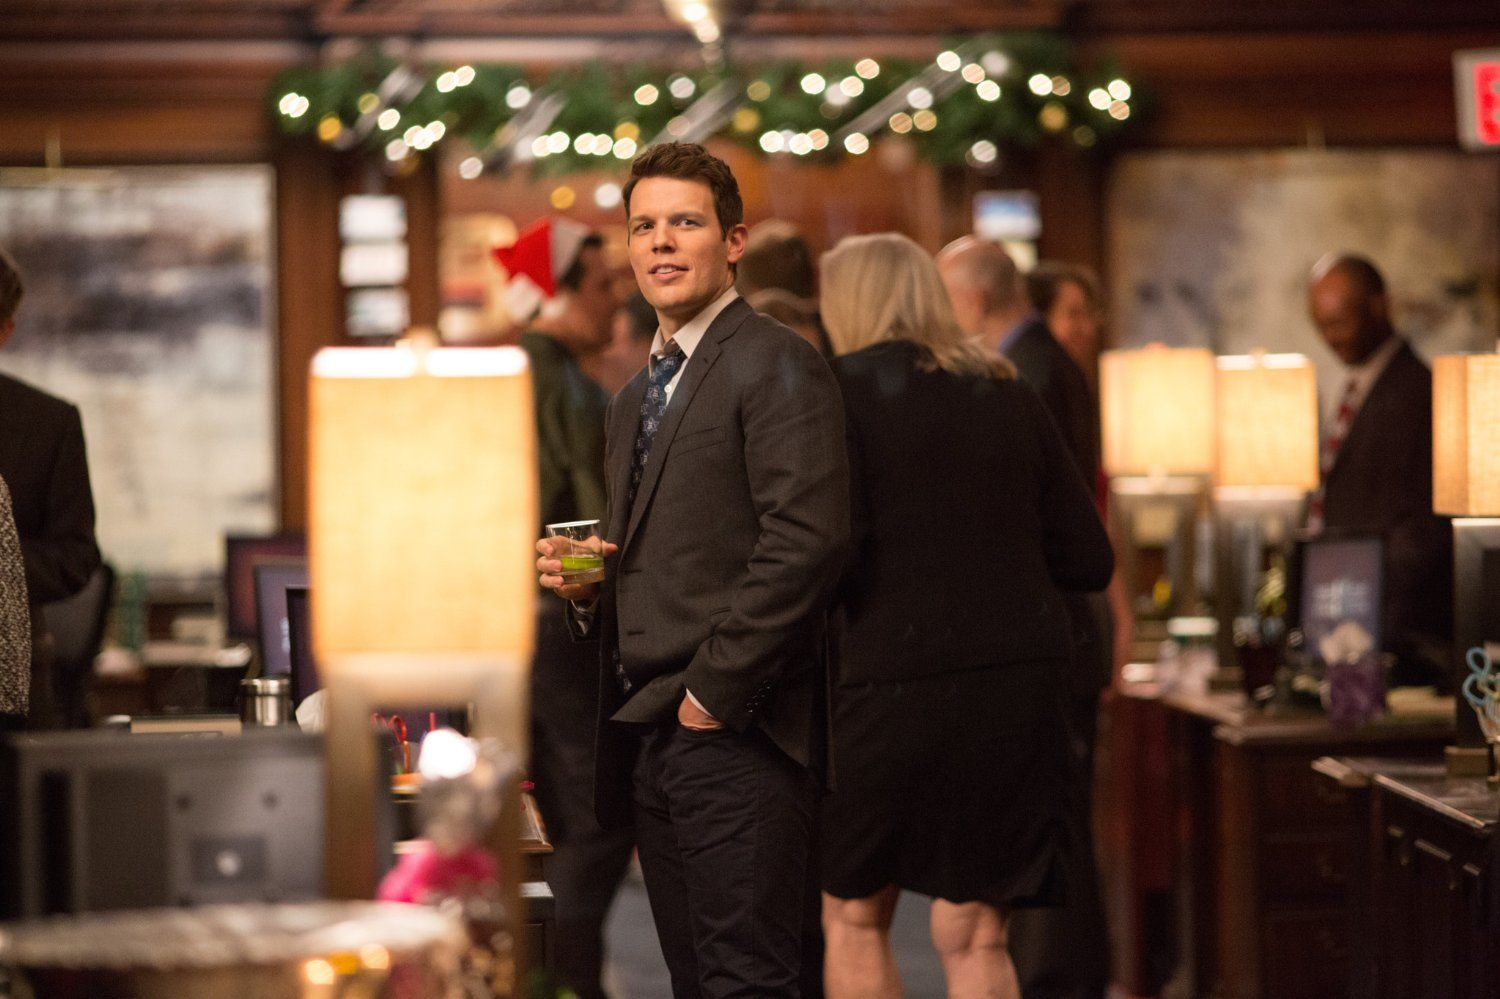 Jake lacy photos including production stills premiere photos and jake lacy in how to be single ccuart Choice Image